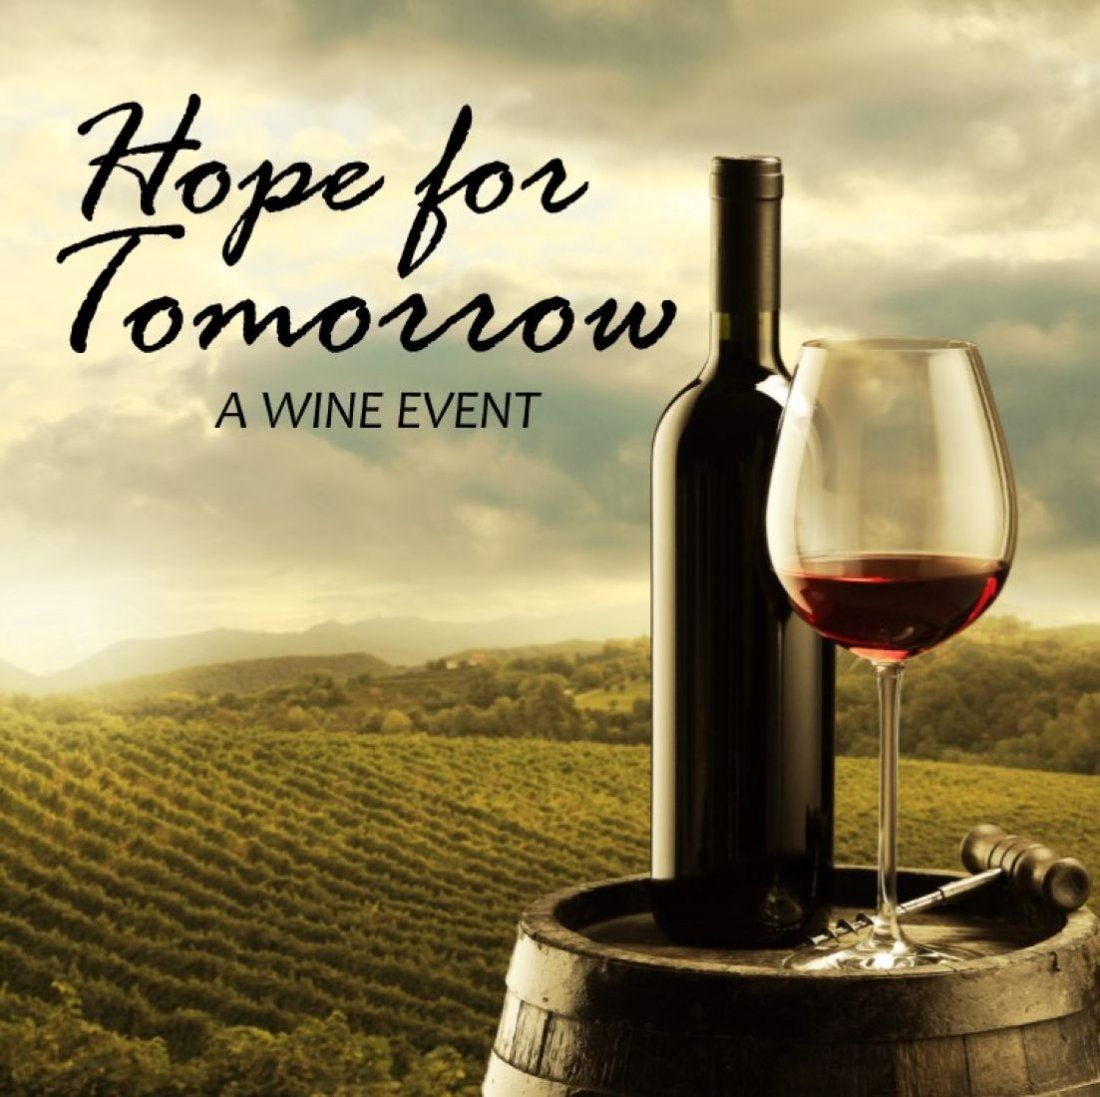 Hope for Tomorrow Wine Event at CHILL WINE BAR 12 years In